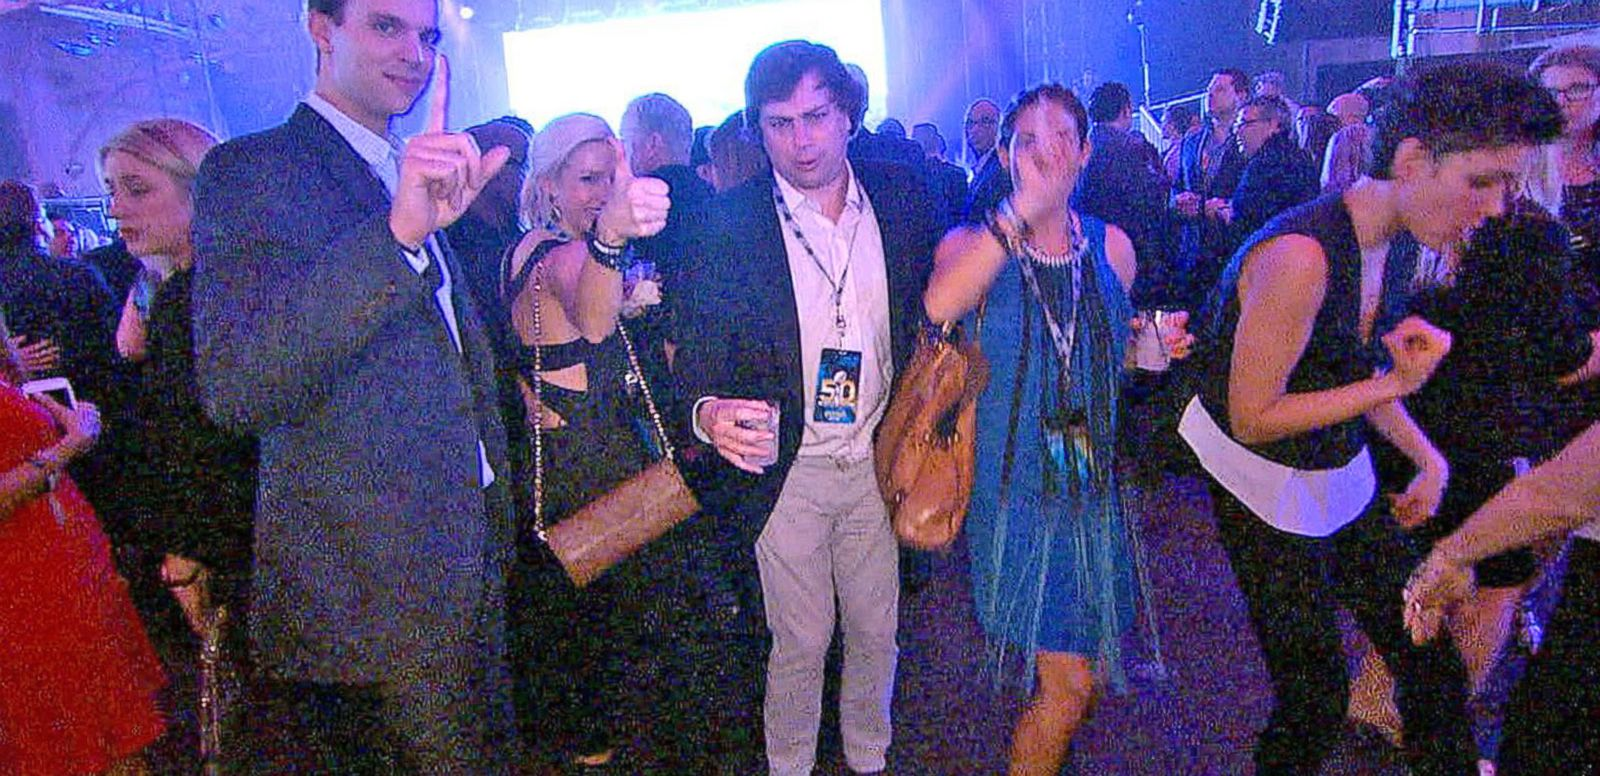 VIDEO: Inside the Biggest Super Bowl 50 Parties